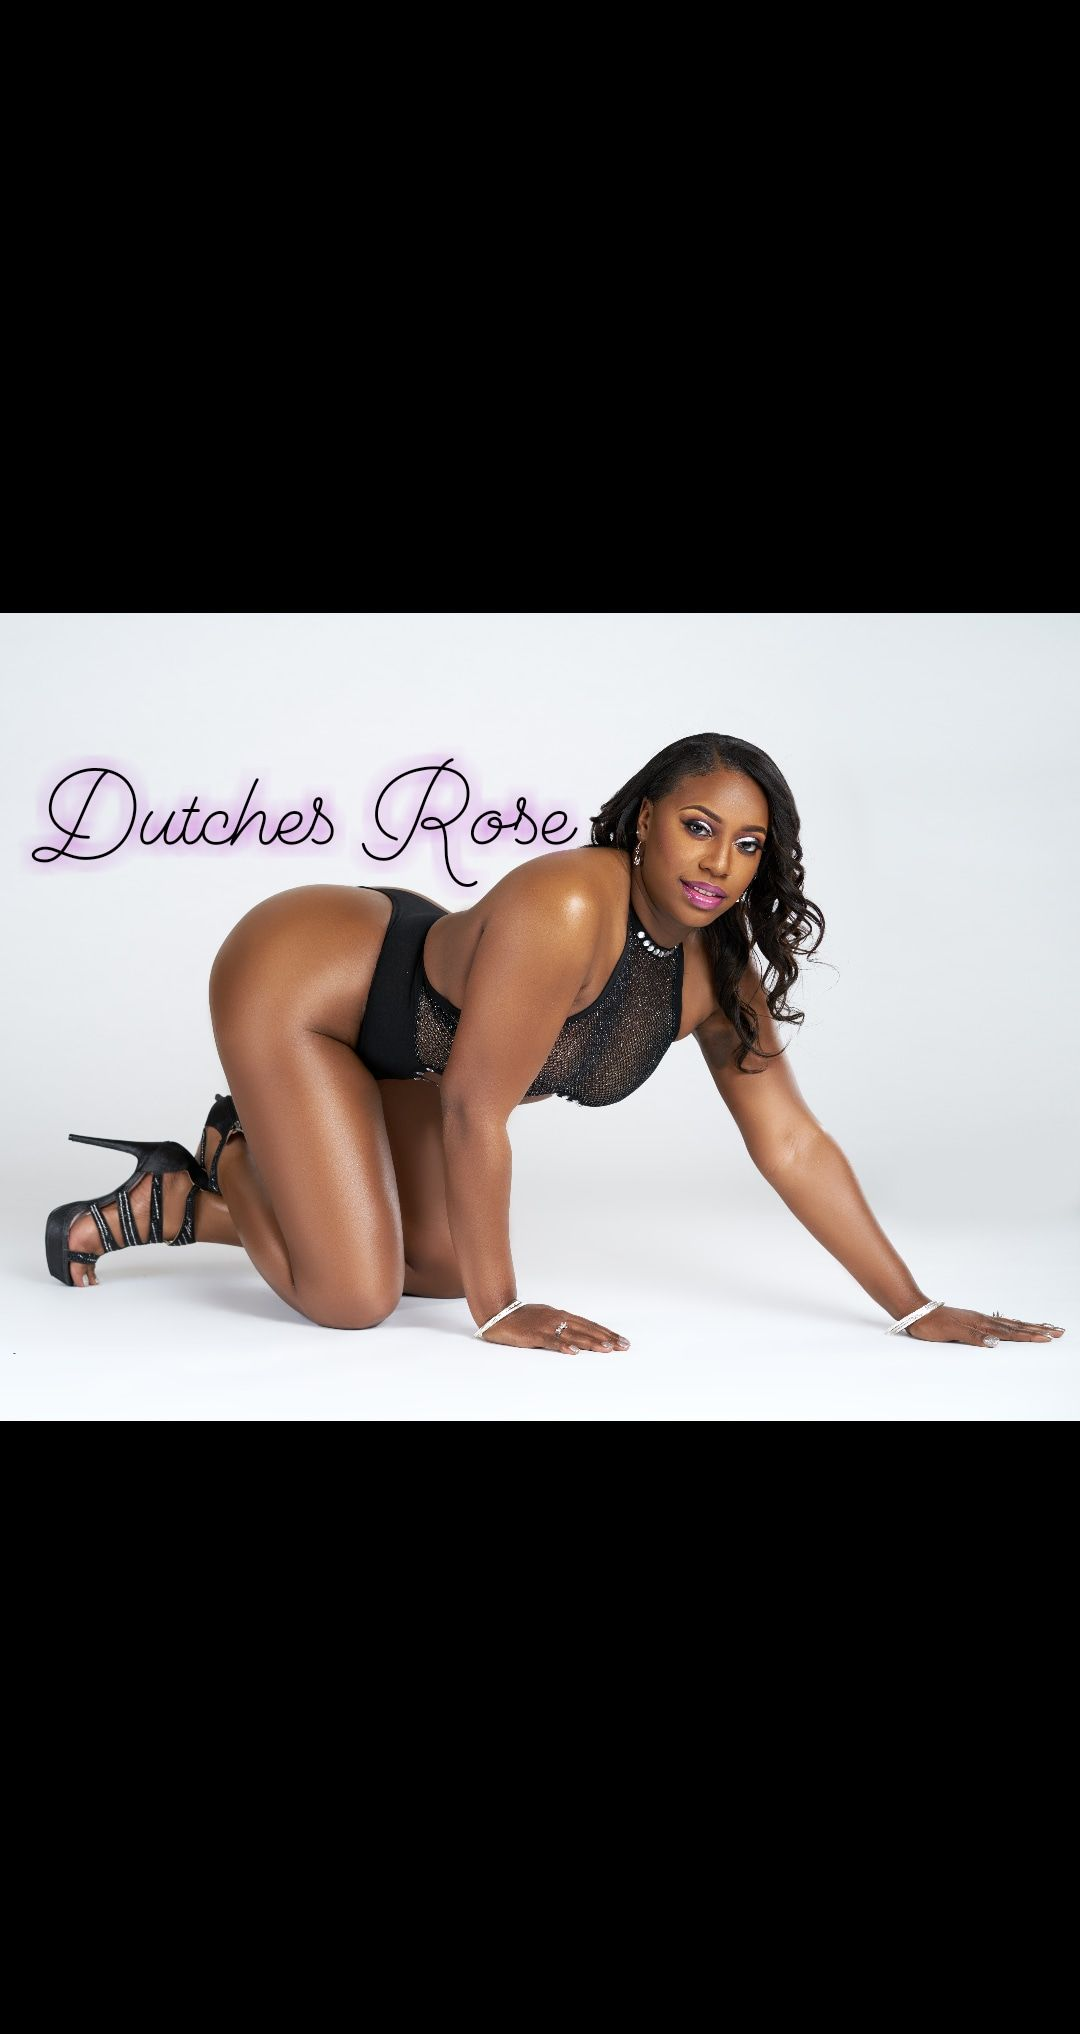 Dutches Rose nudes onlyfans onlyfans leaked